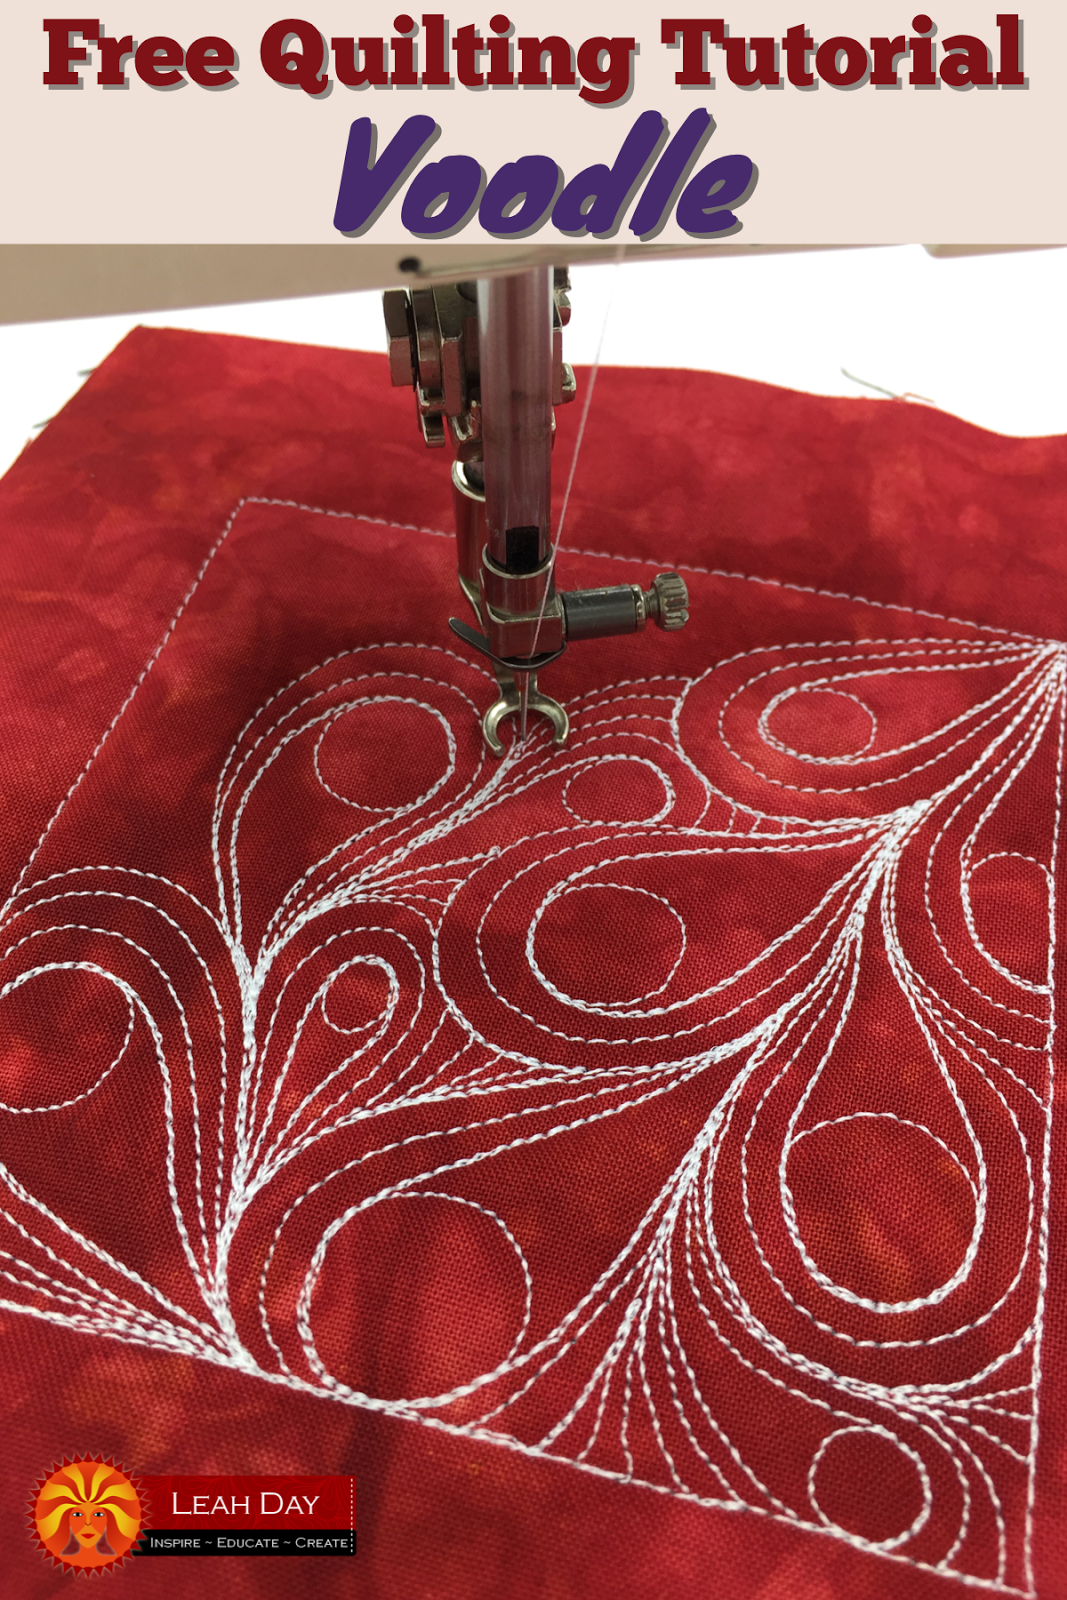 Learn more about free motion quilting through hundreds of free ... : free quilt videos - Adamdwight.com